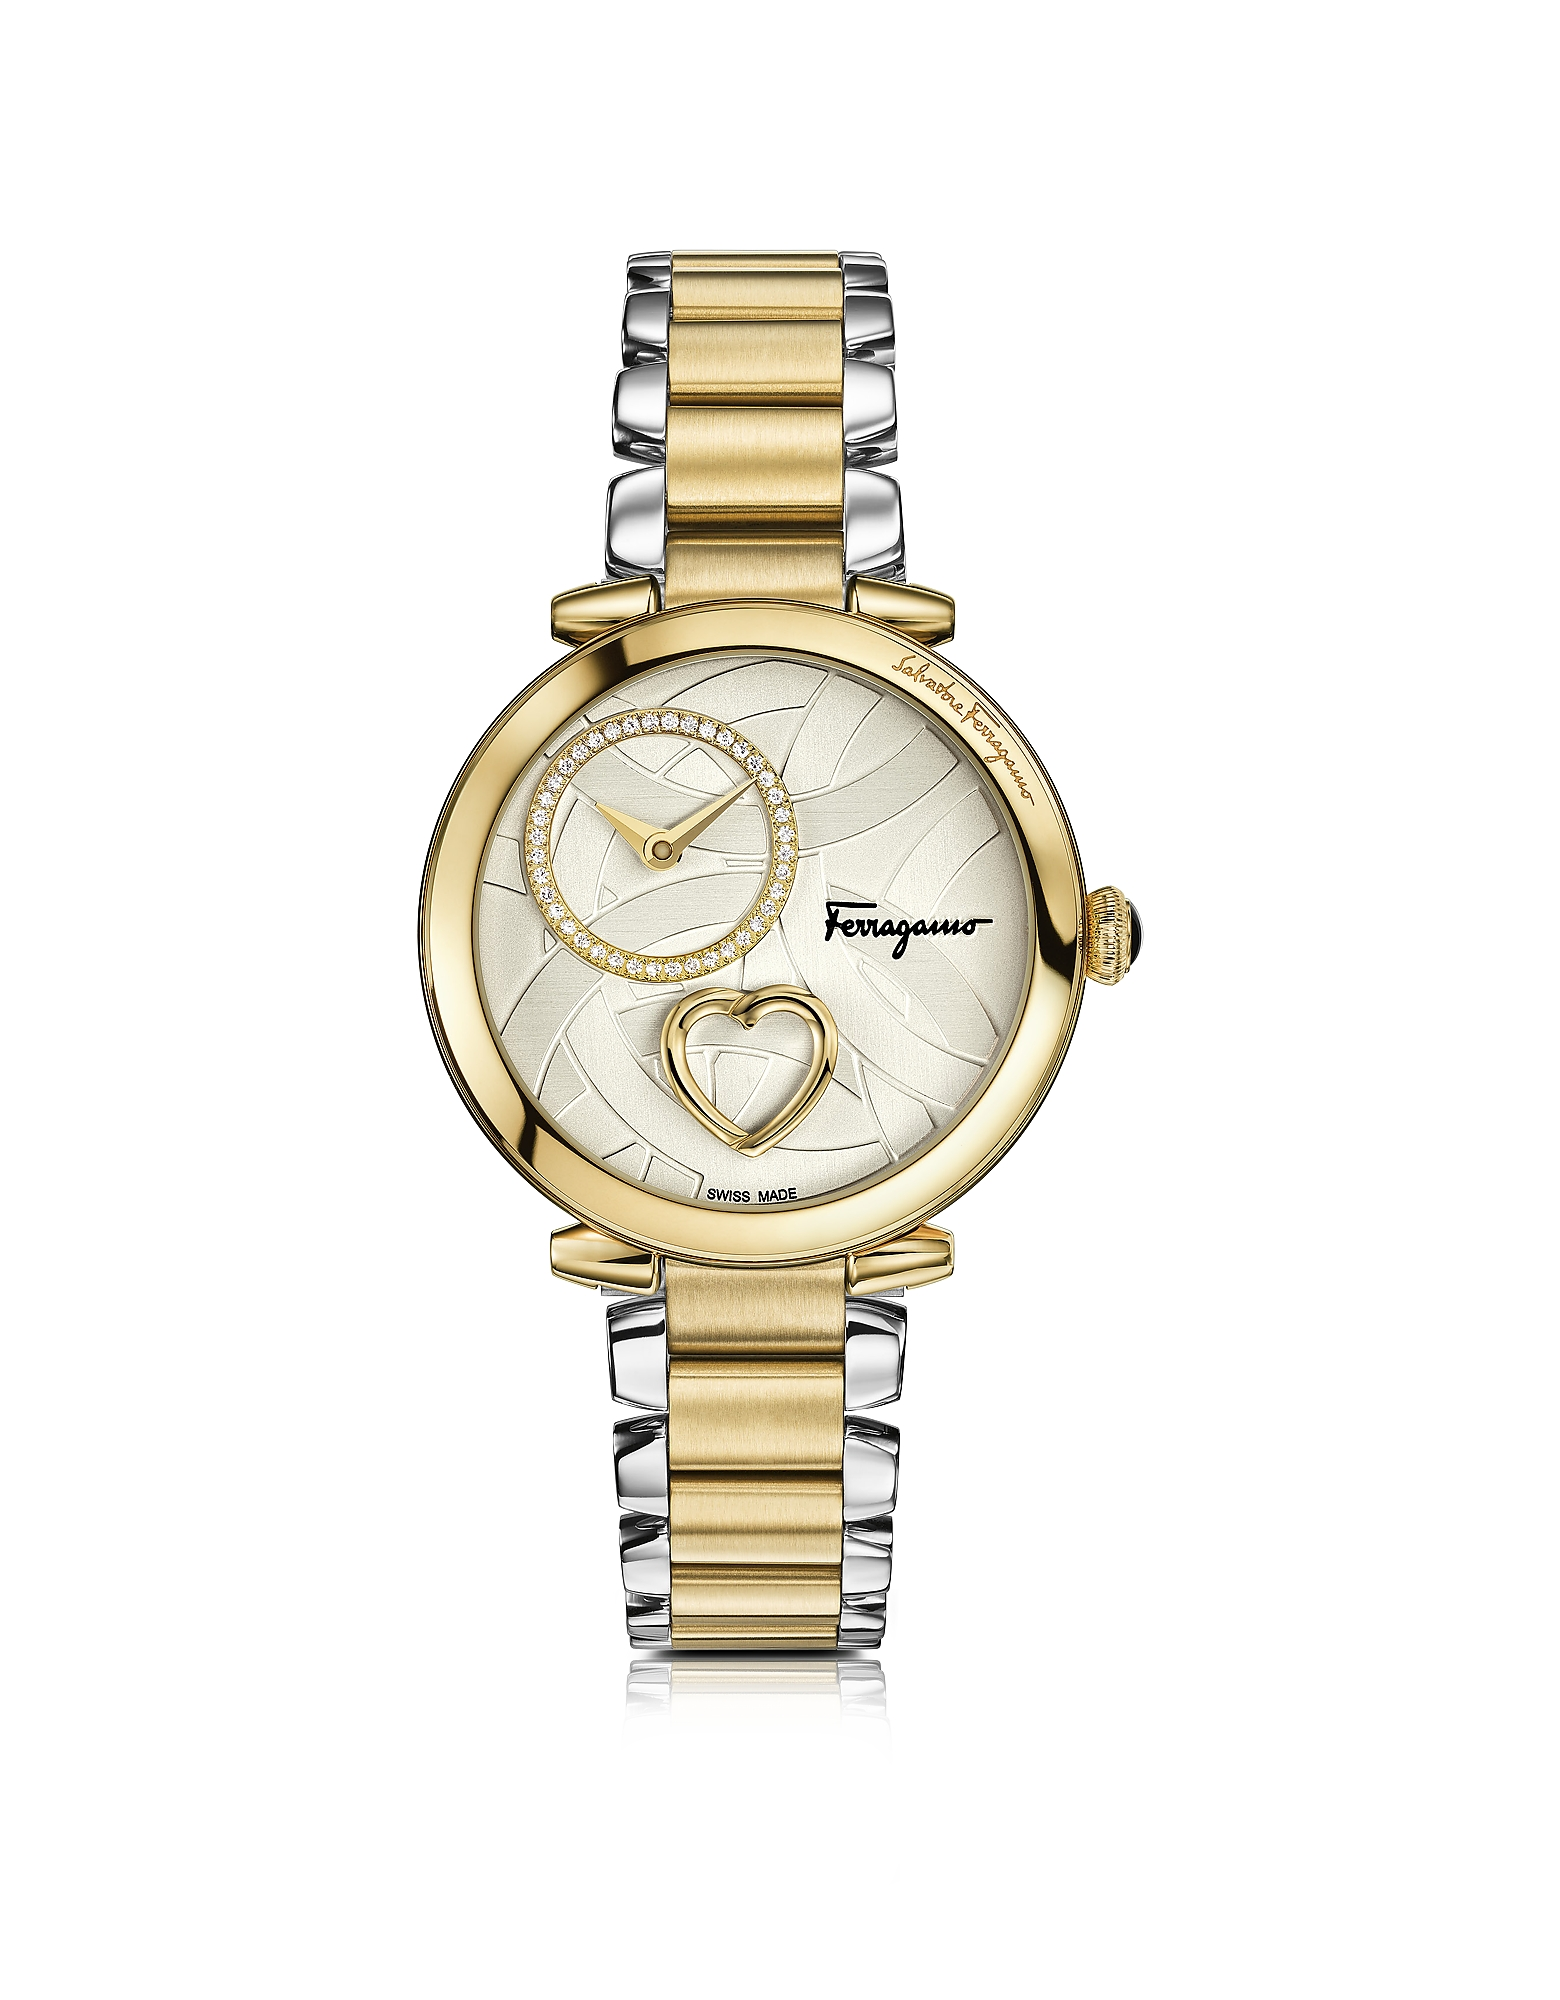 Cuore Ferragamo Stainless Steel and Gold IP Diamonds and Beating Heart Women's Bracelet Watch